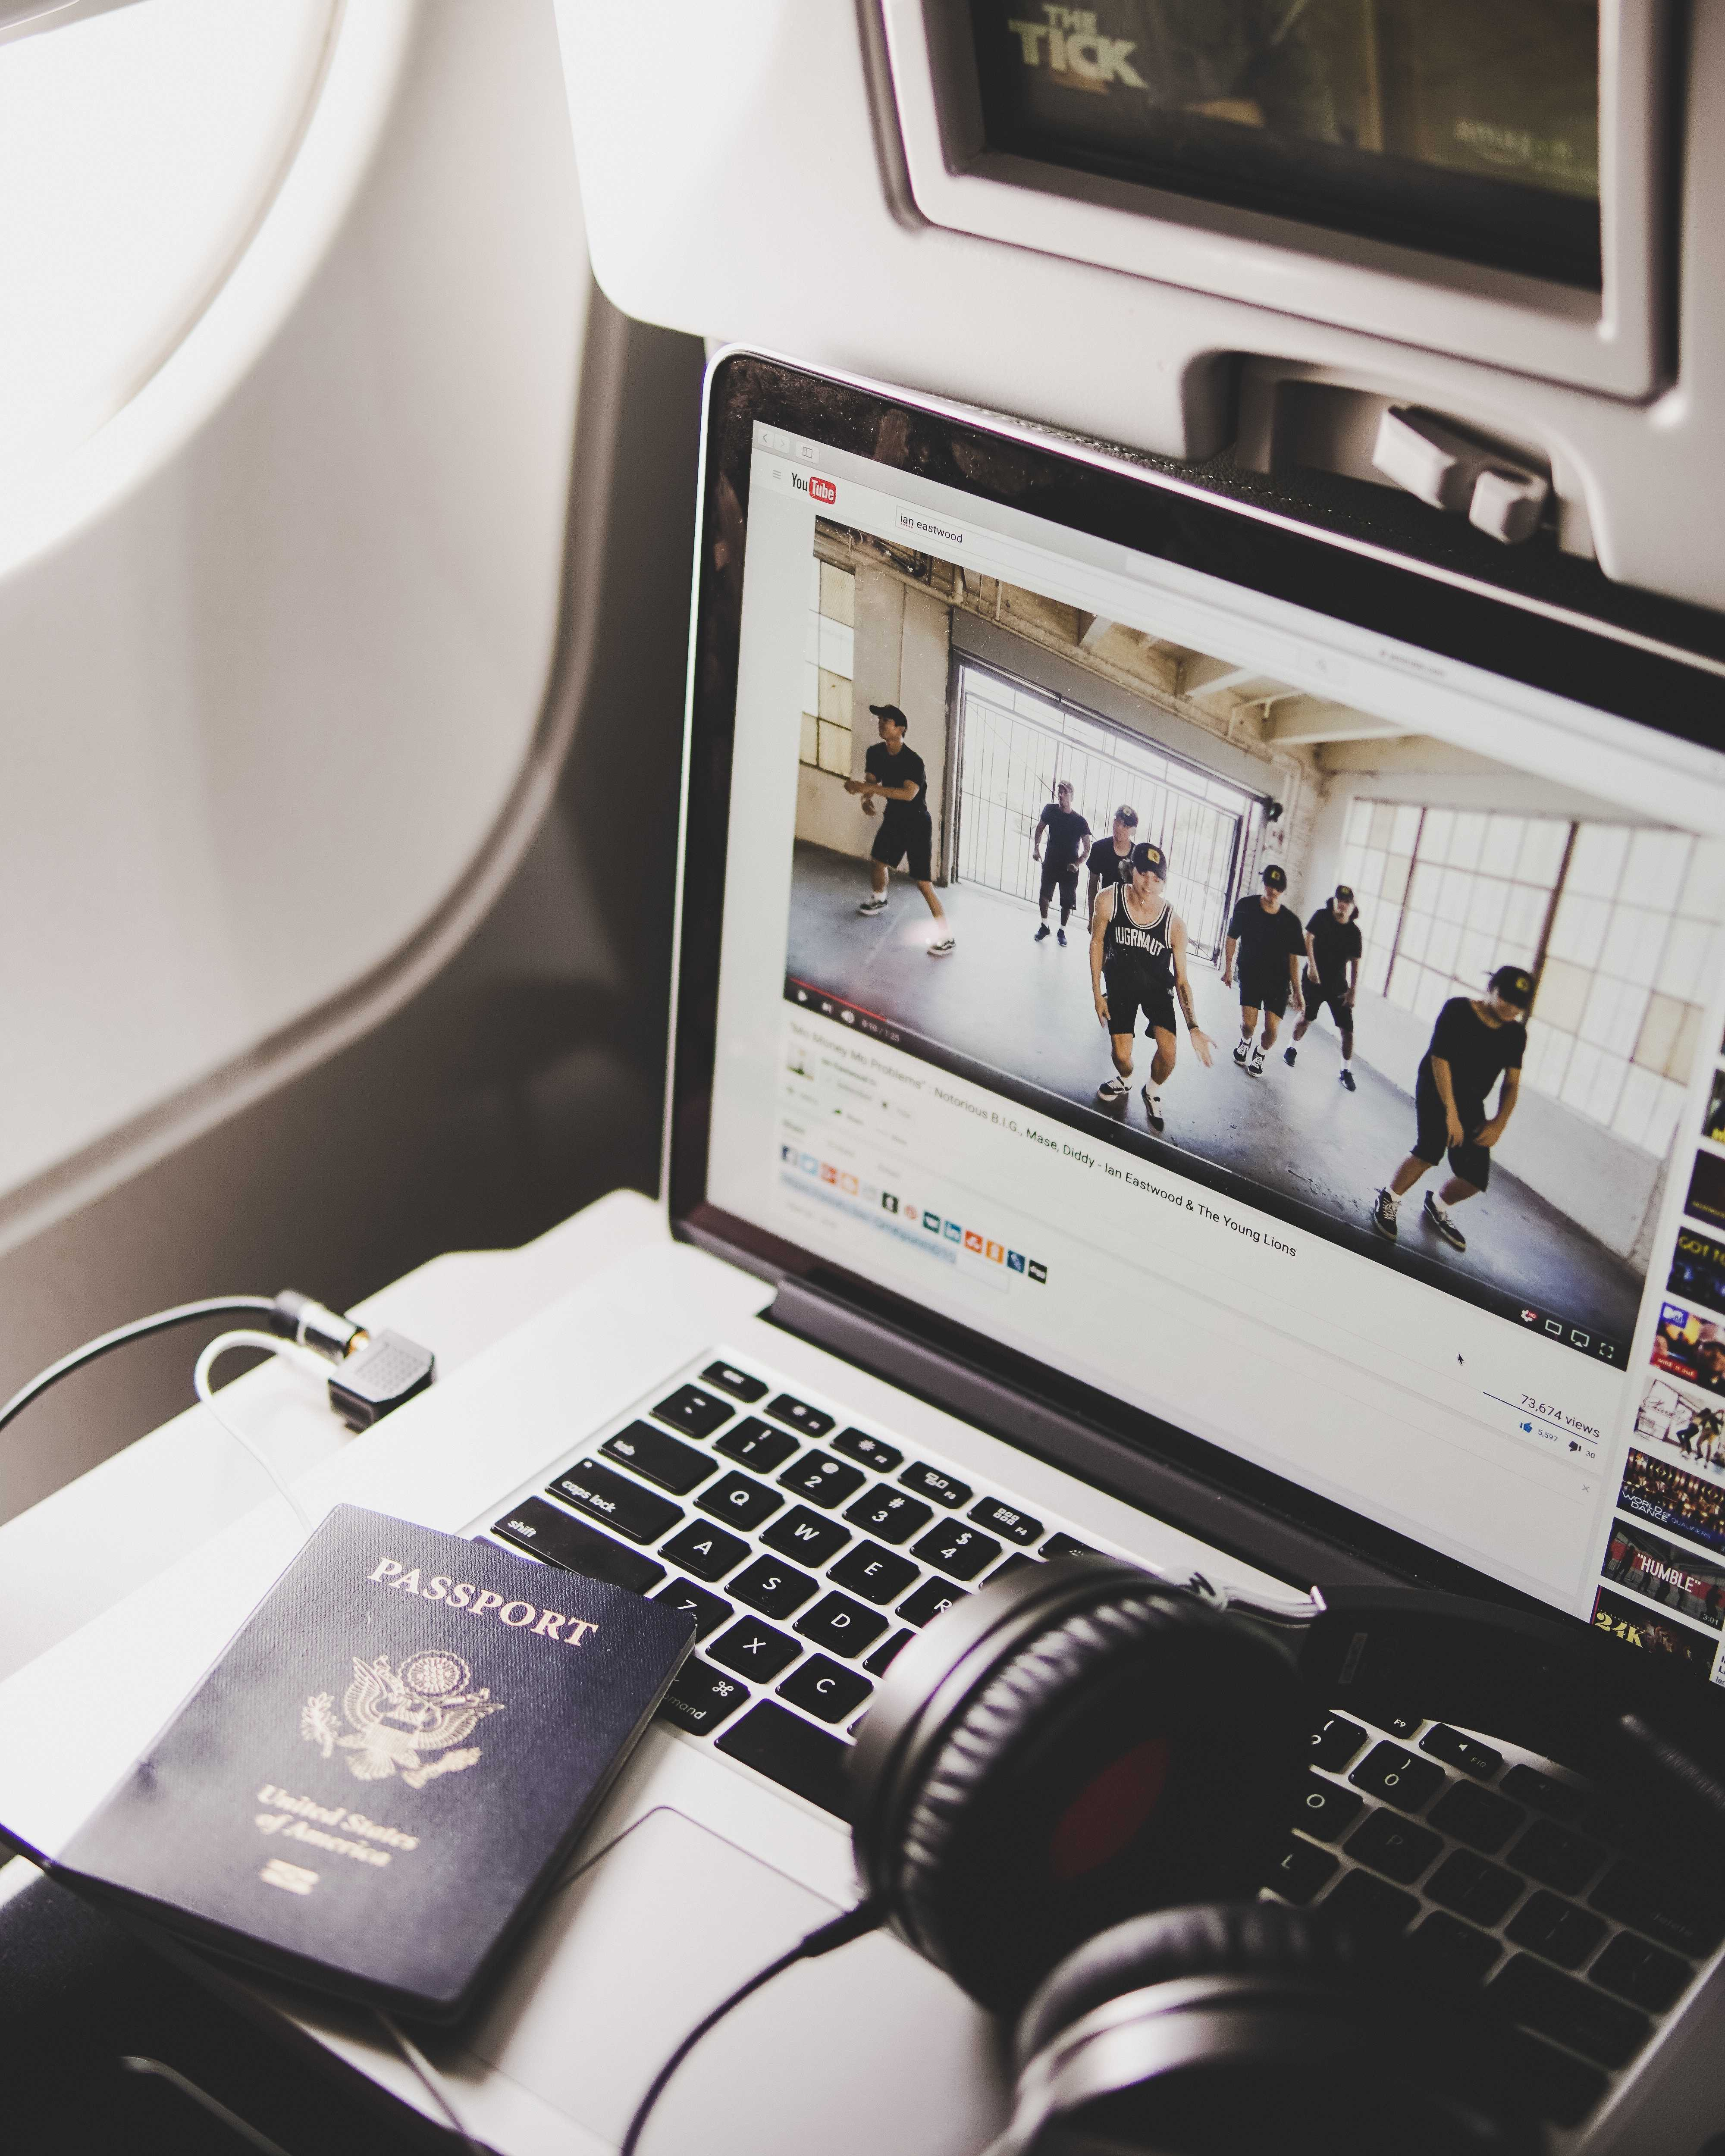 4 tips for keeping healthy when traveling